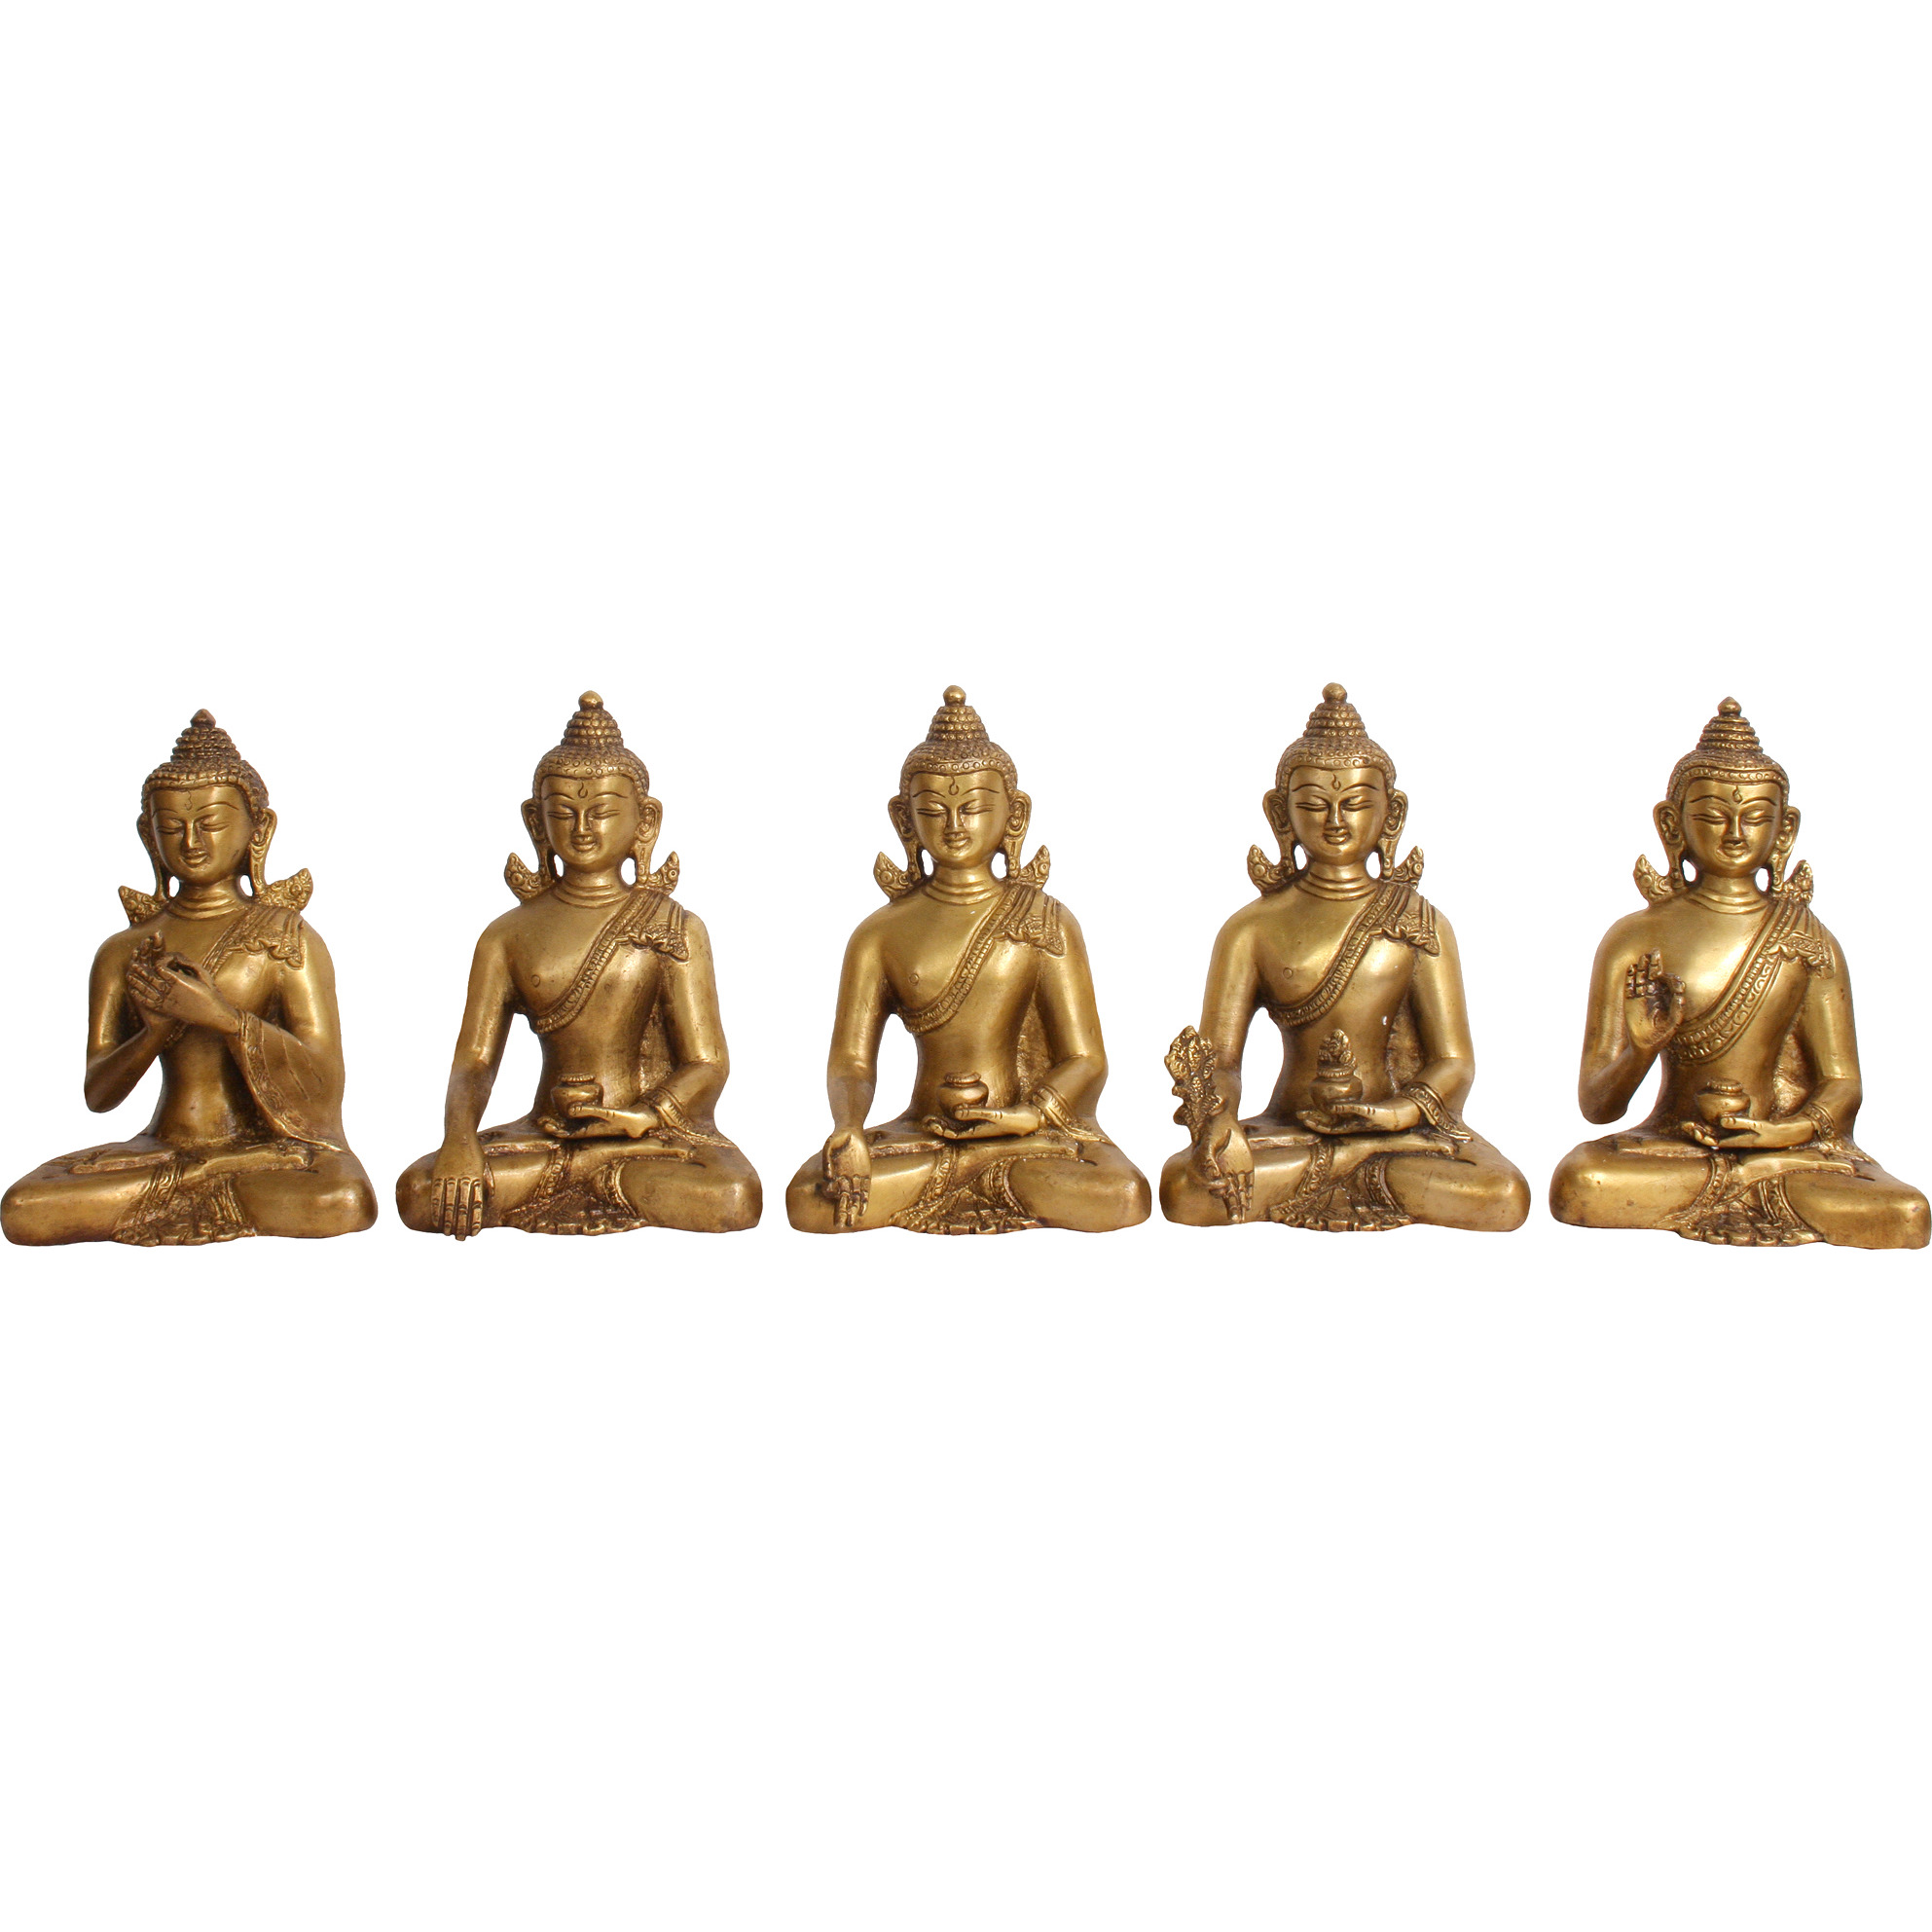 Set of Five Cosmic Buddhas (Tibetan Buddhist Deities)